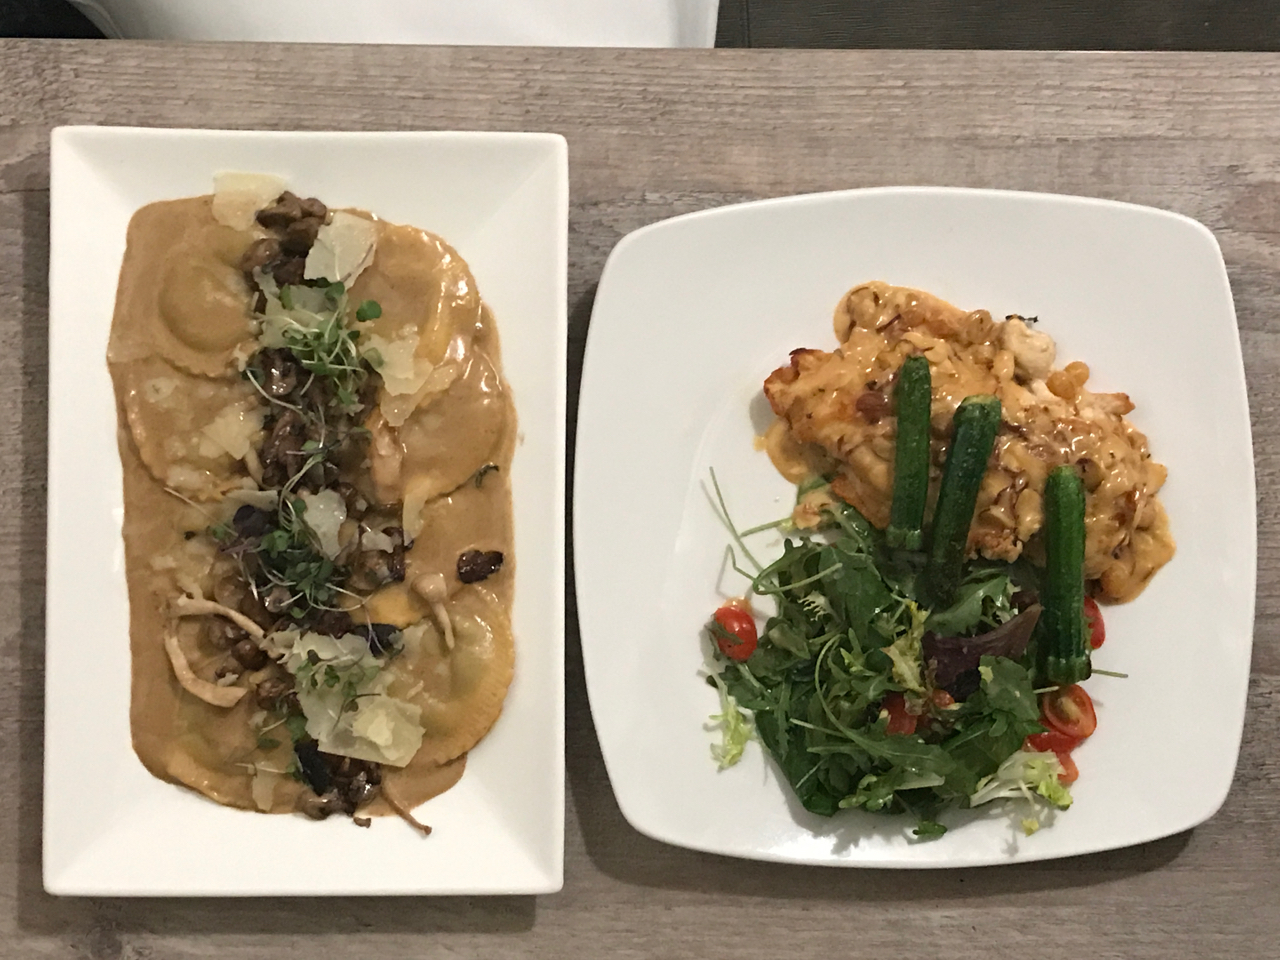 A photo of two dishes on the table at Morsey's Farmhouse Kitchen in Los Altos, California. The first dish is a wild mushroom ravioli and the second is a chicken paillard saltimbocca.